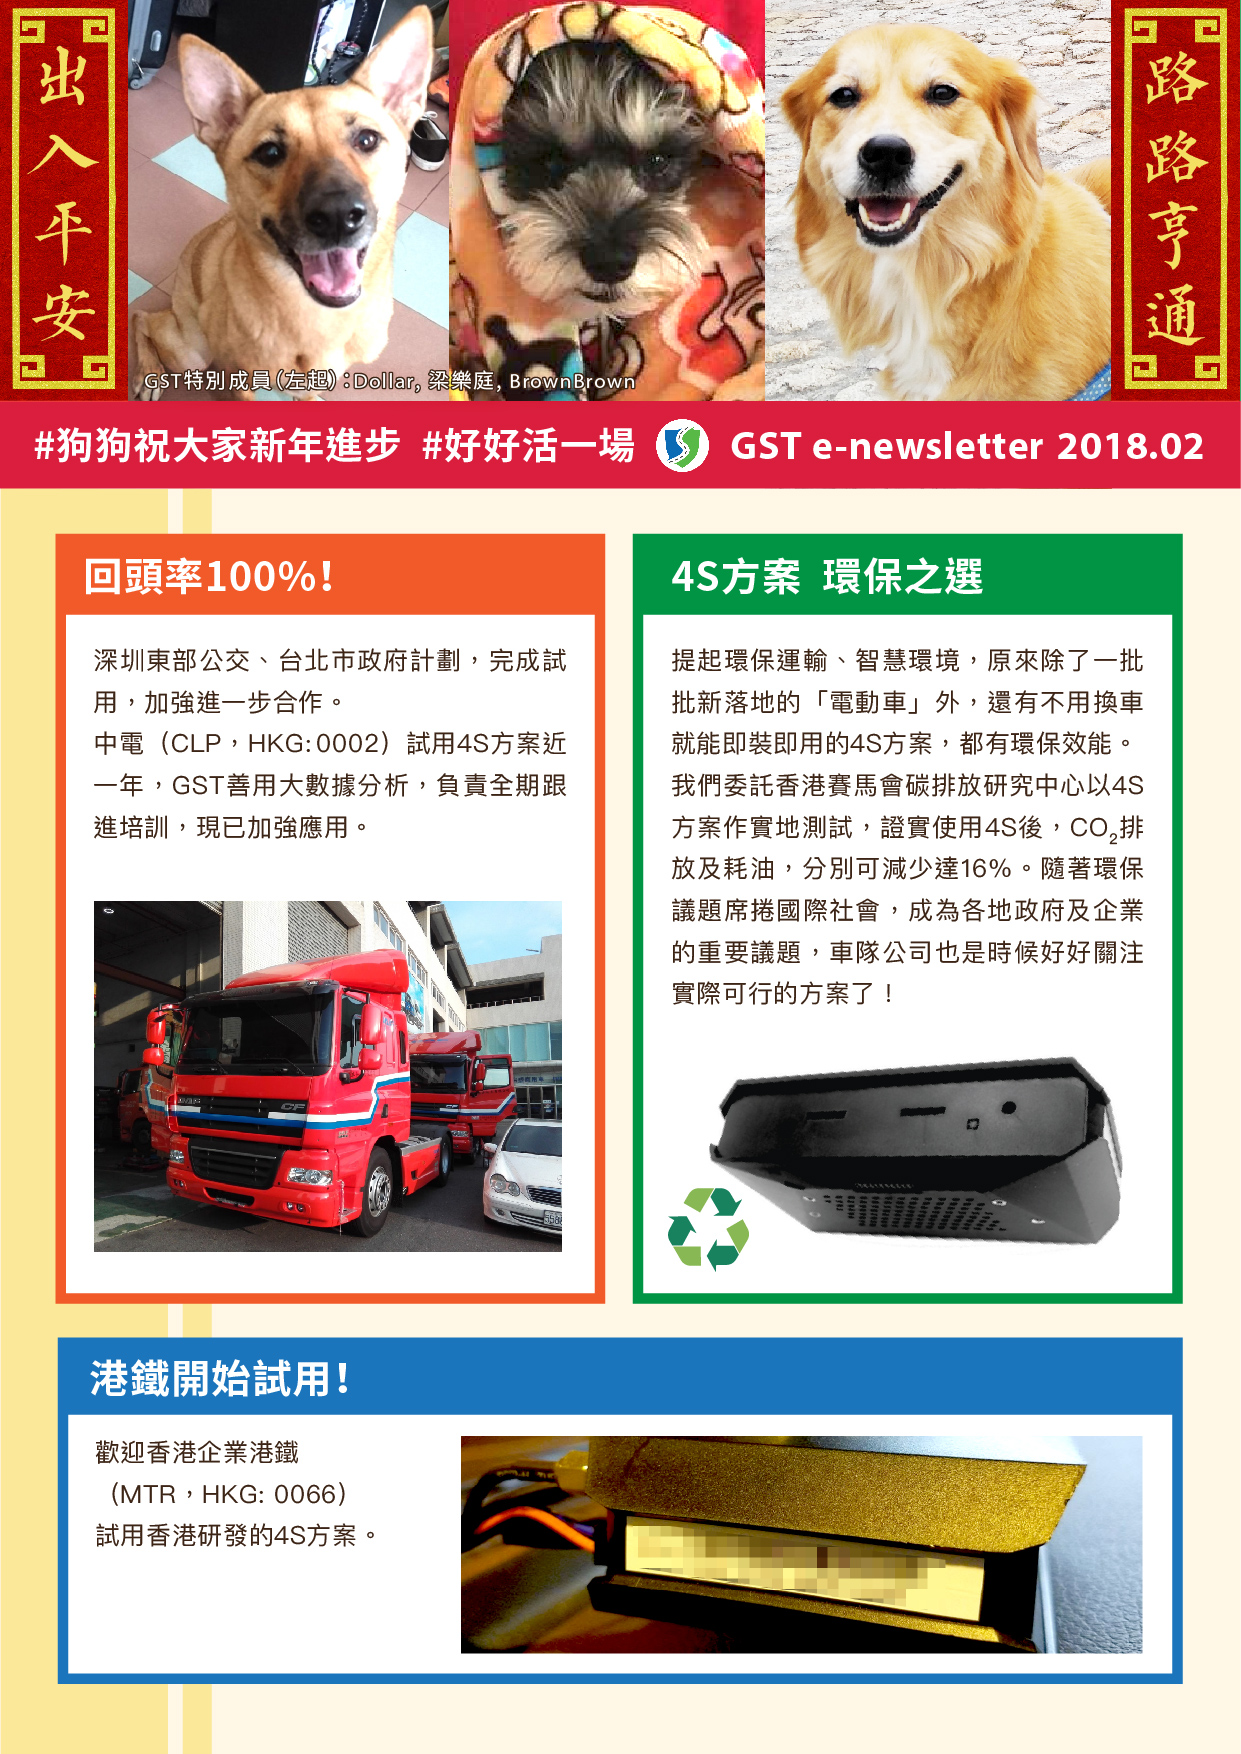 Page 1 - 悼念大埔公路事故遇難者 Page 2 - 港鐵開始試用4S方案 Page 3 - Delegation to Connected City Conference 2018 and Beijing Belt and Road Trip in Great Hall of the People